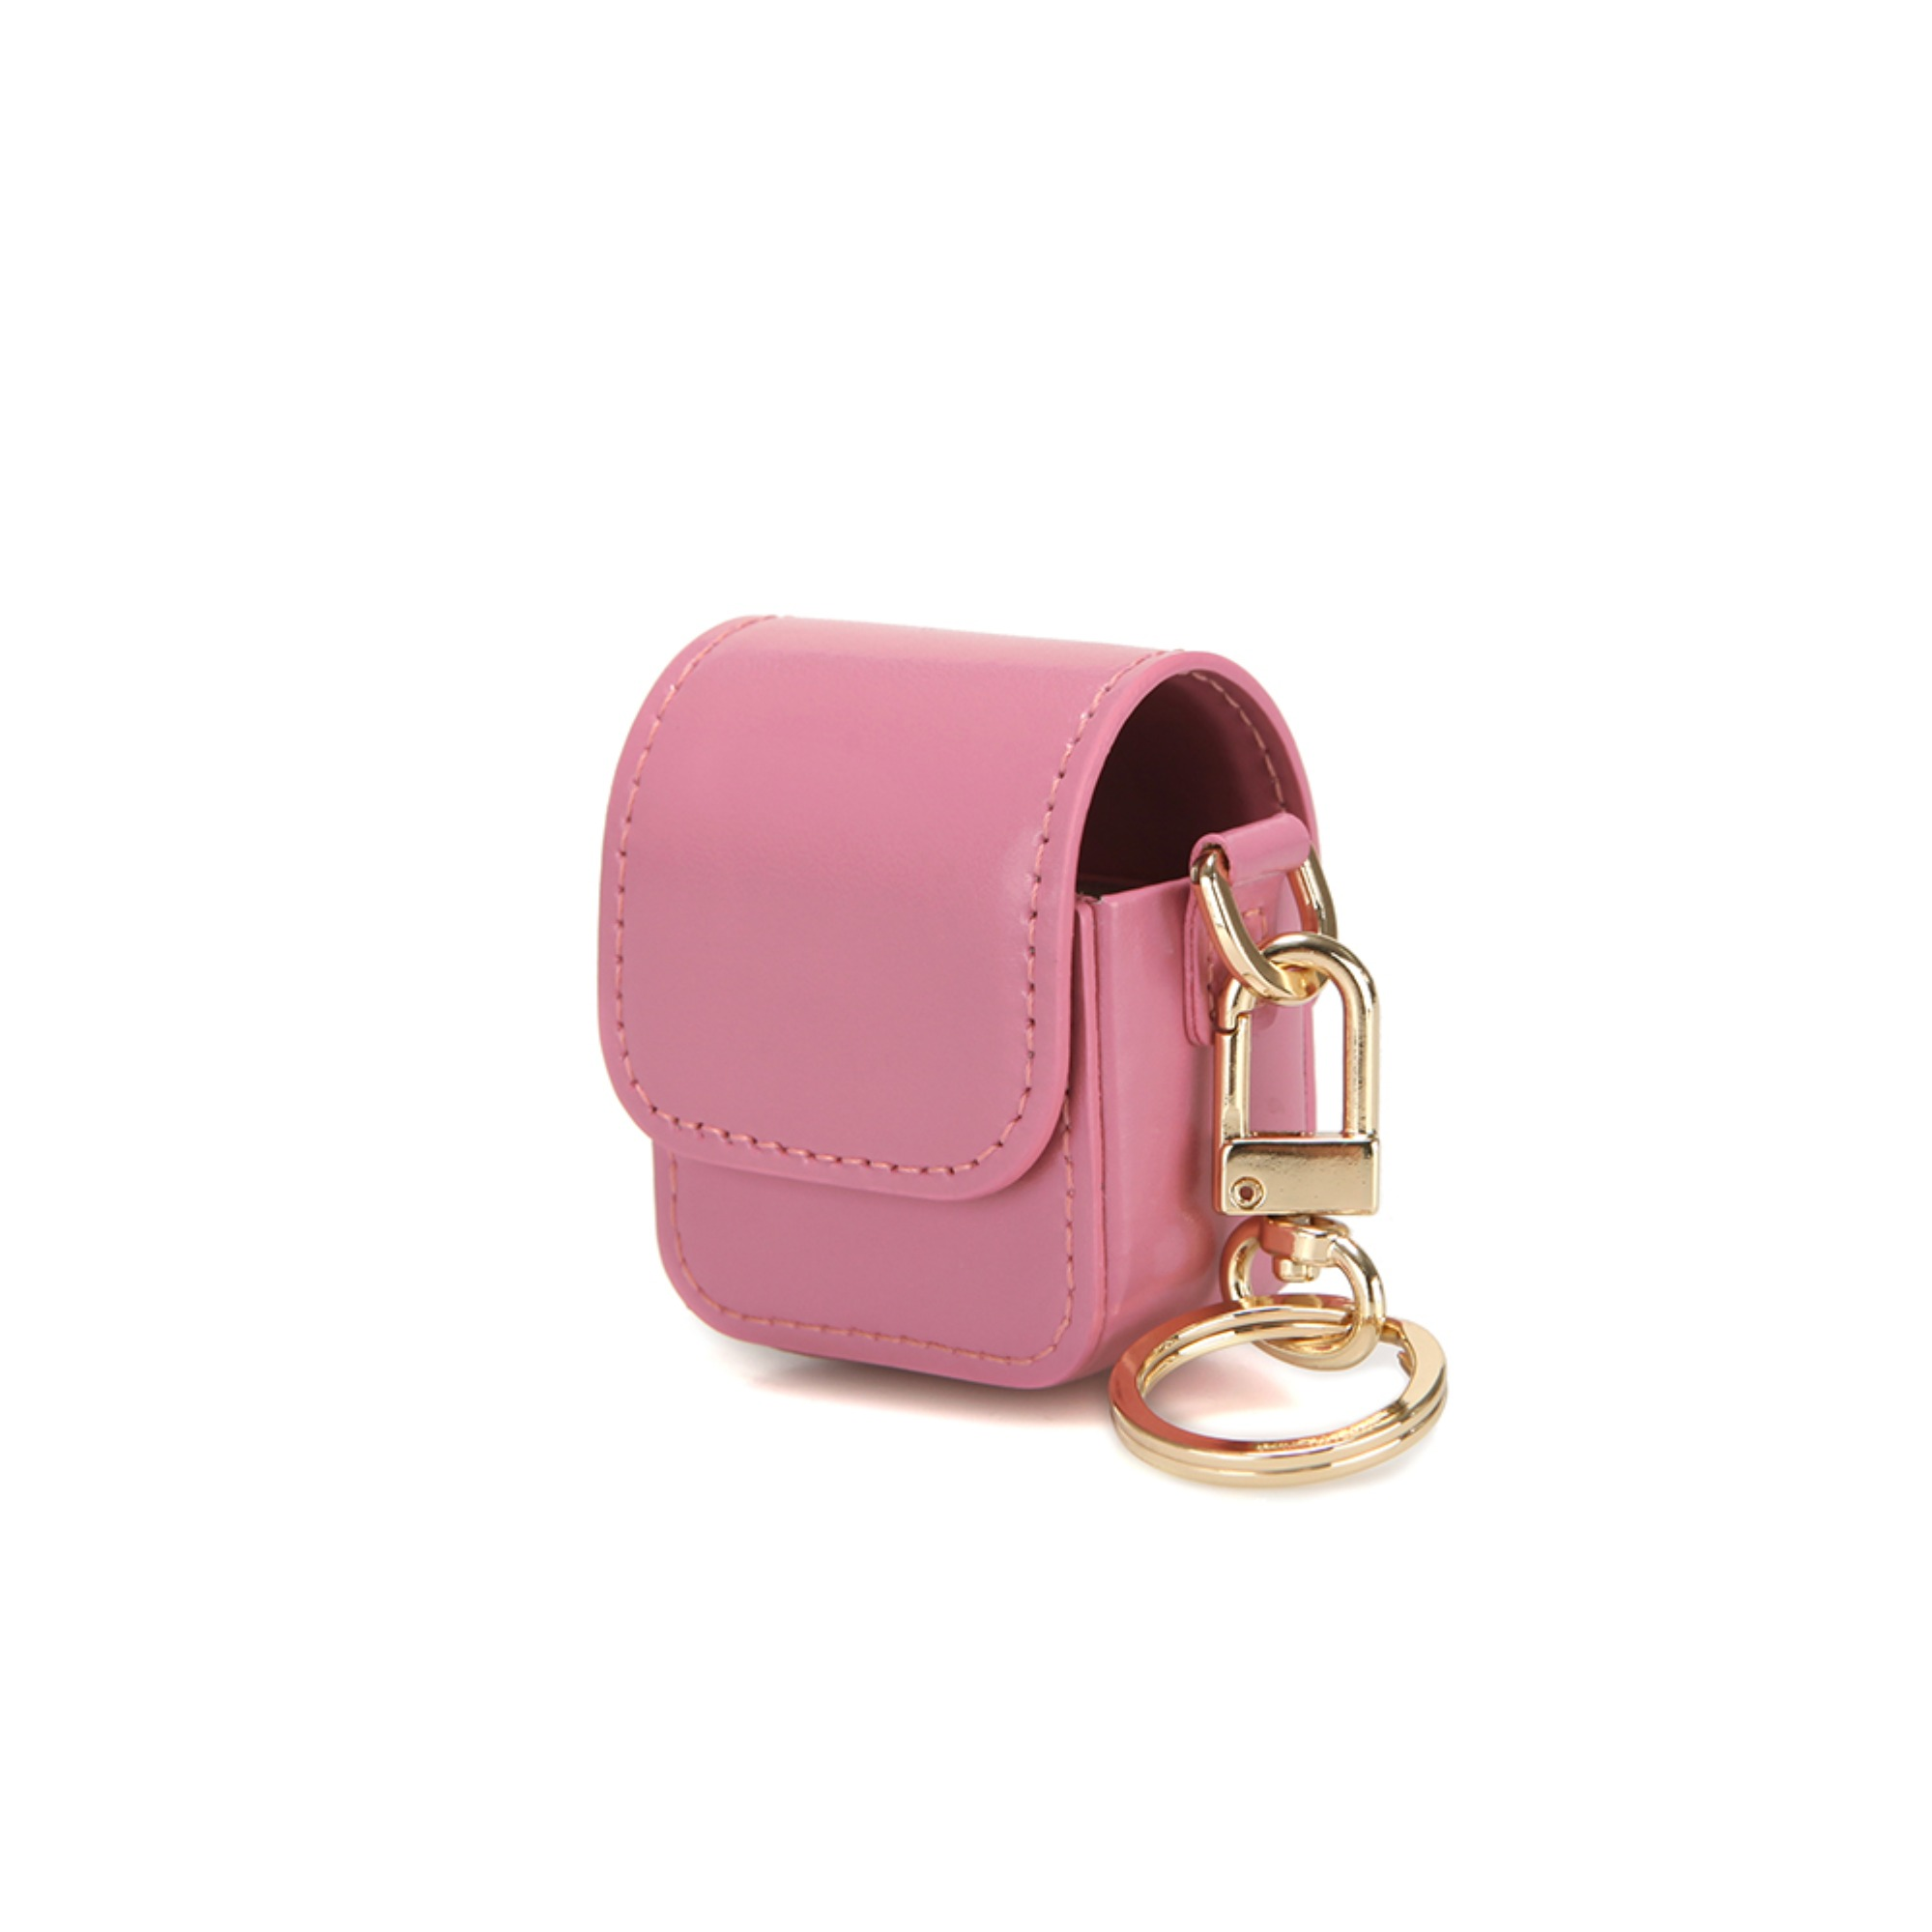 LEATHER AIRPODS CASE - ROSE PINK